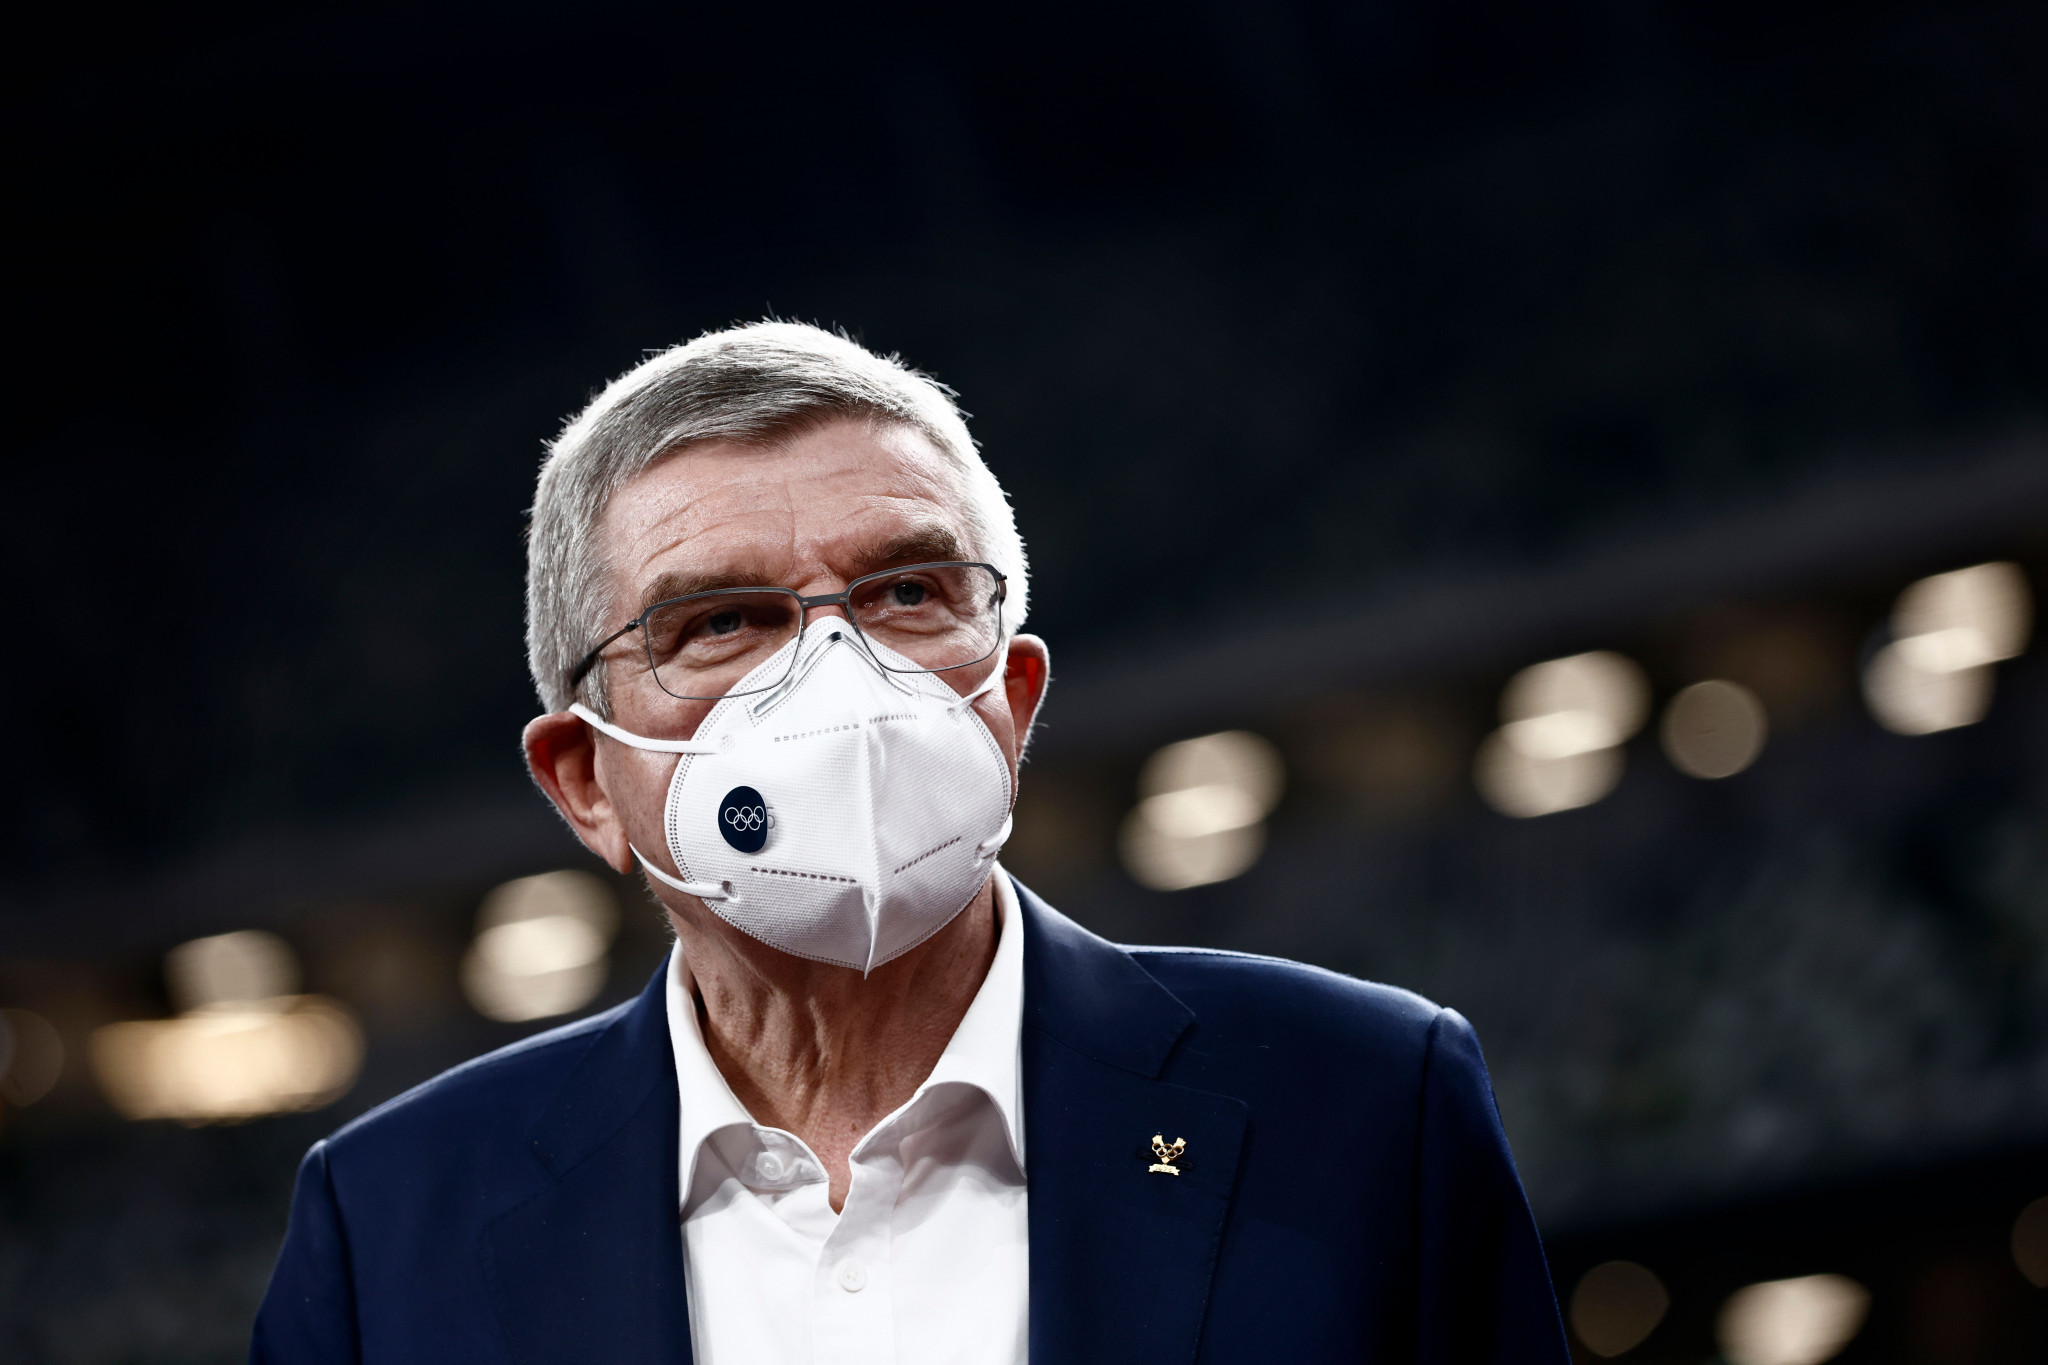 """IOC President Thomas Bach claimed there is """"no reason whatsoever"""" for Tokyo 2020 to not be held this year ©Getty Images"""